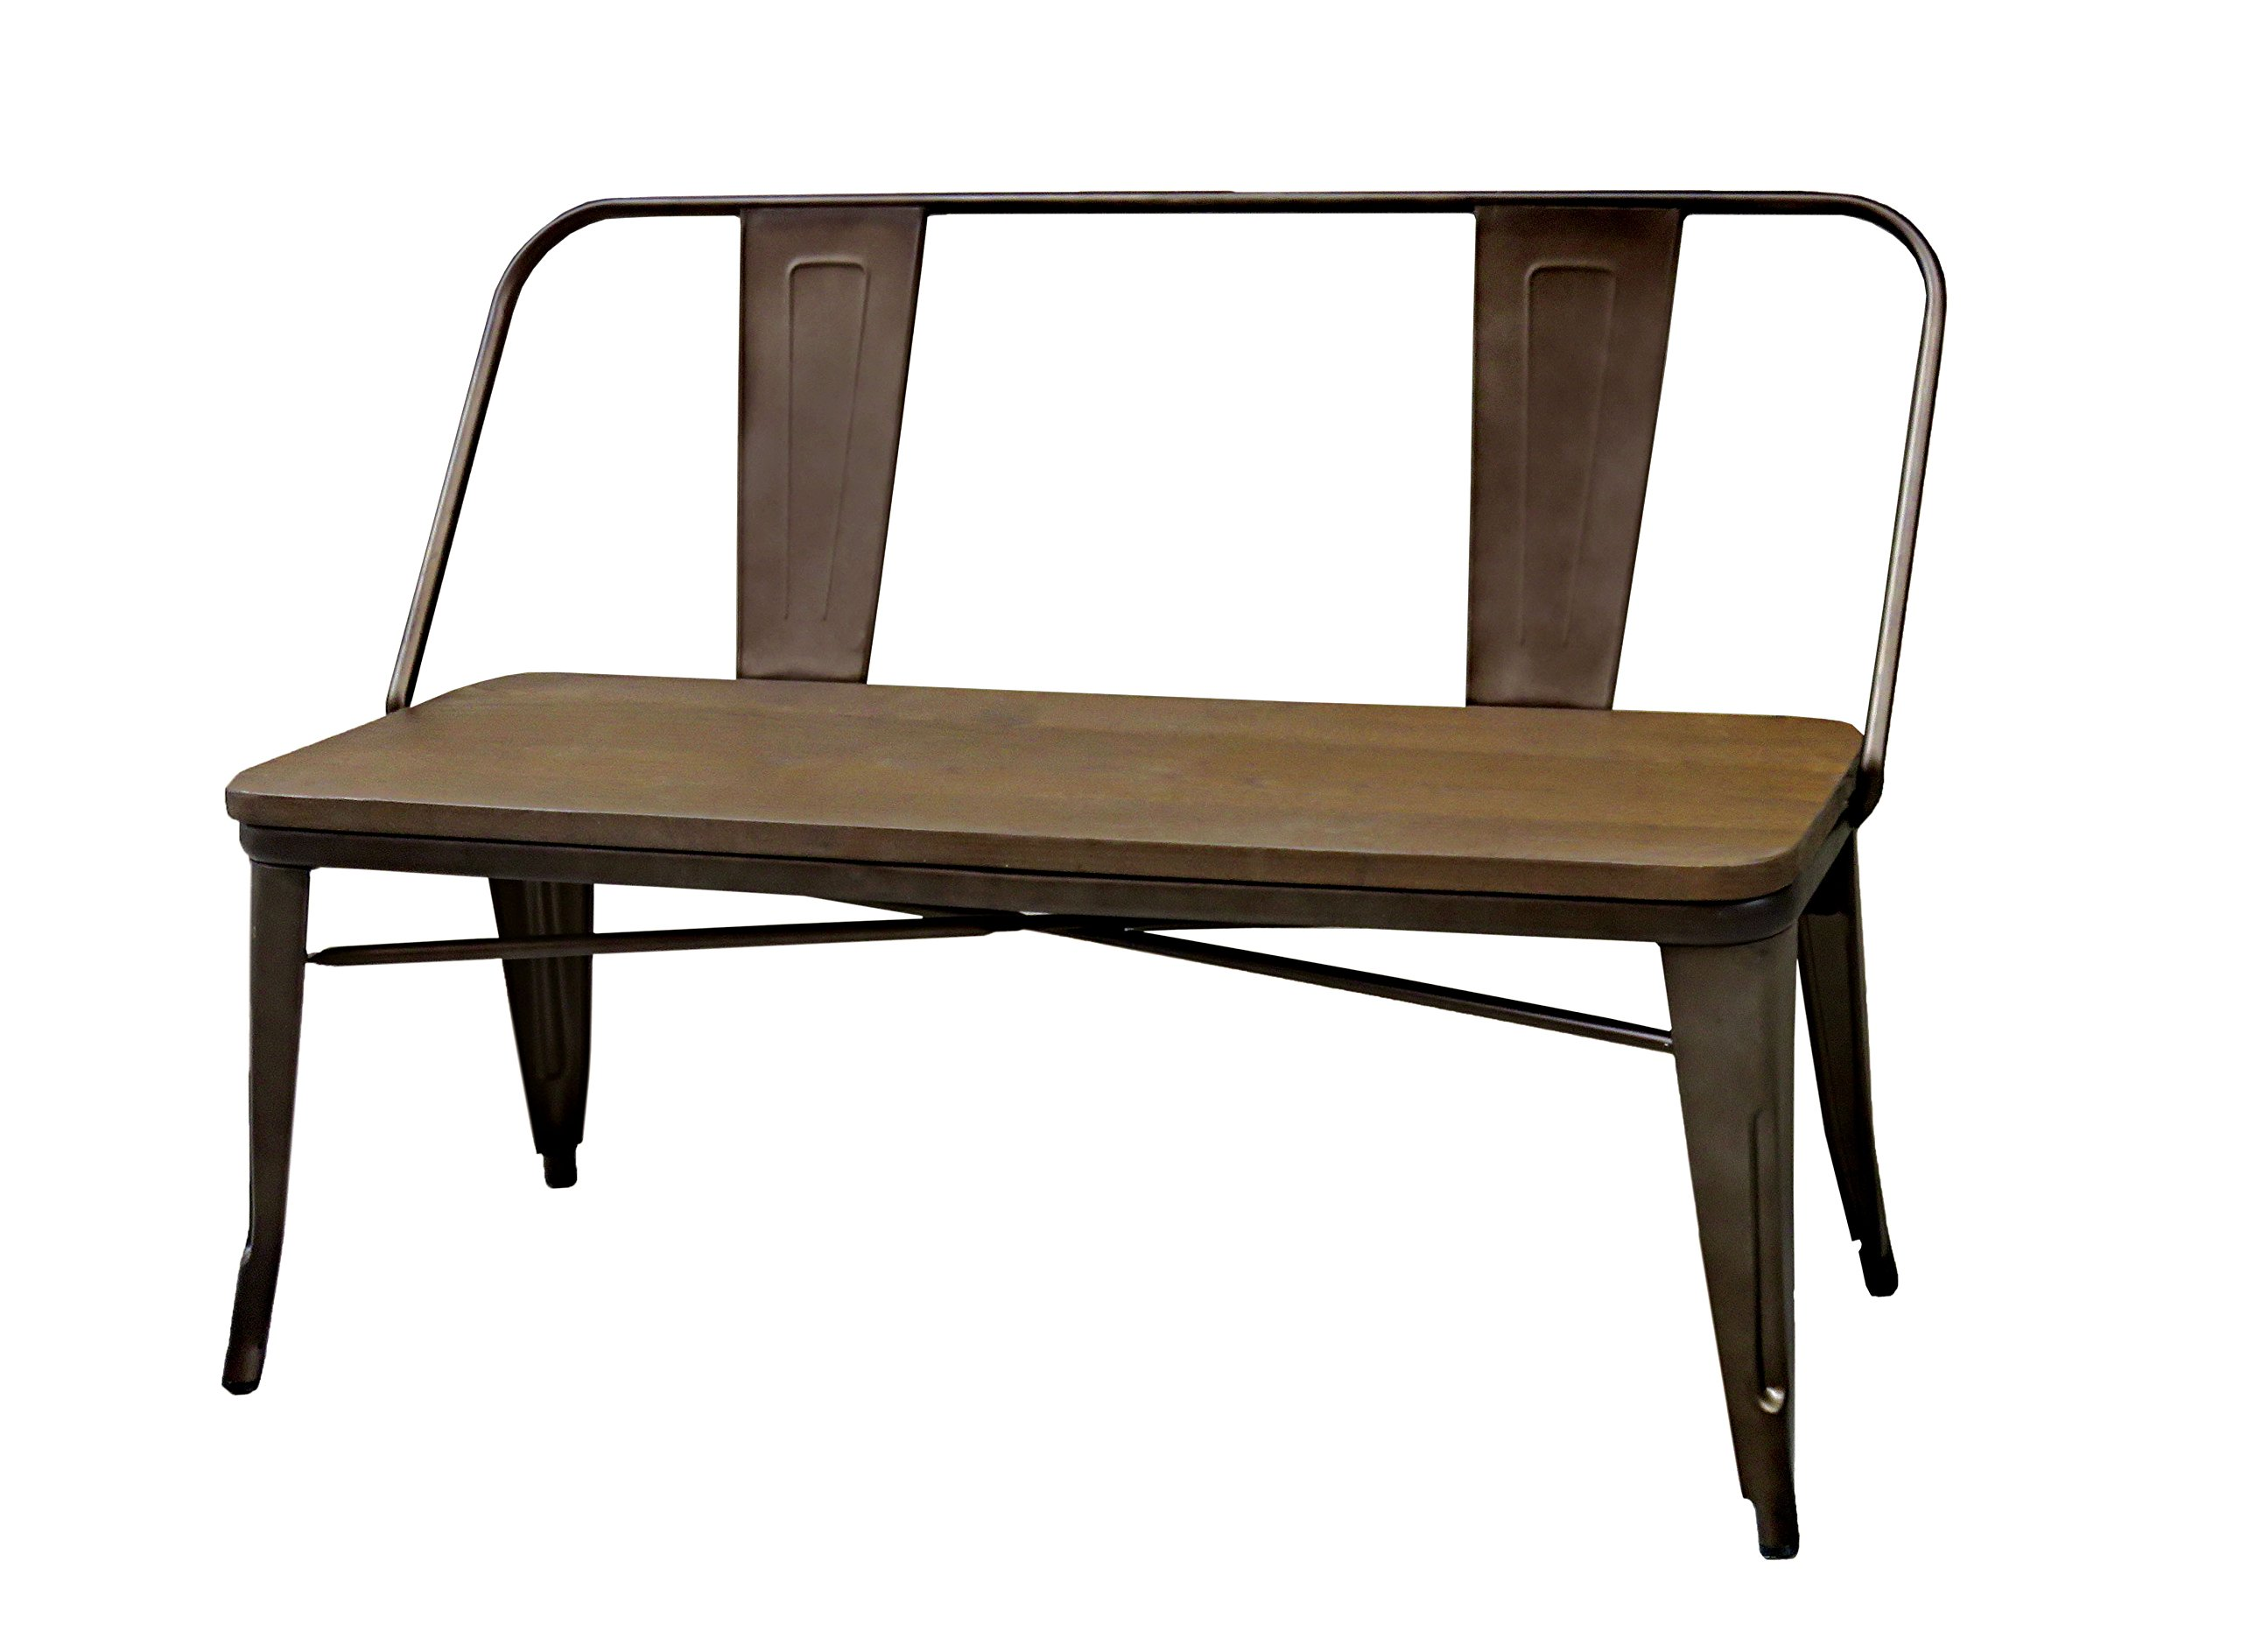 HOMES: Inside + Out IDF-3529BN Dark Bronze Trevin Industrial Bench, Natural Elm